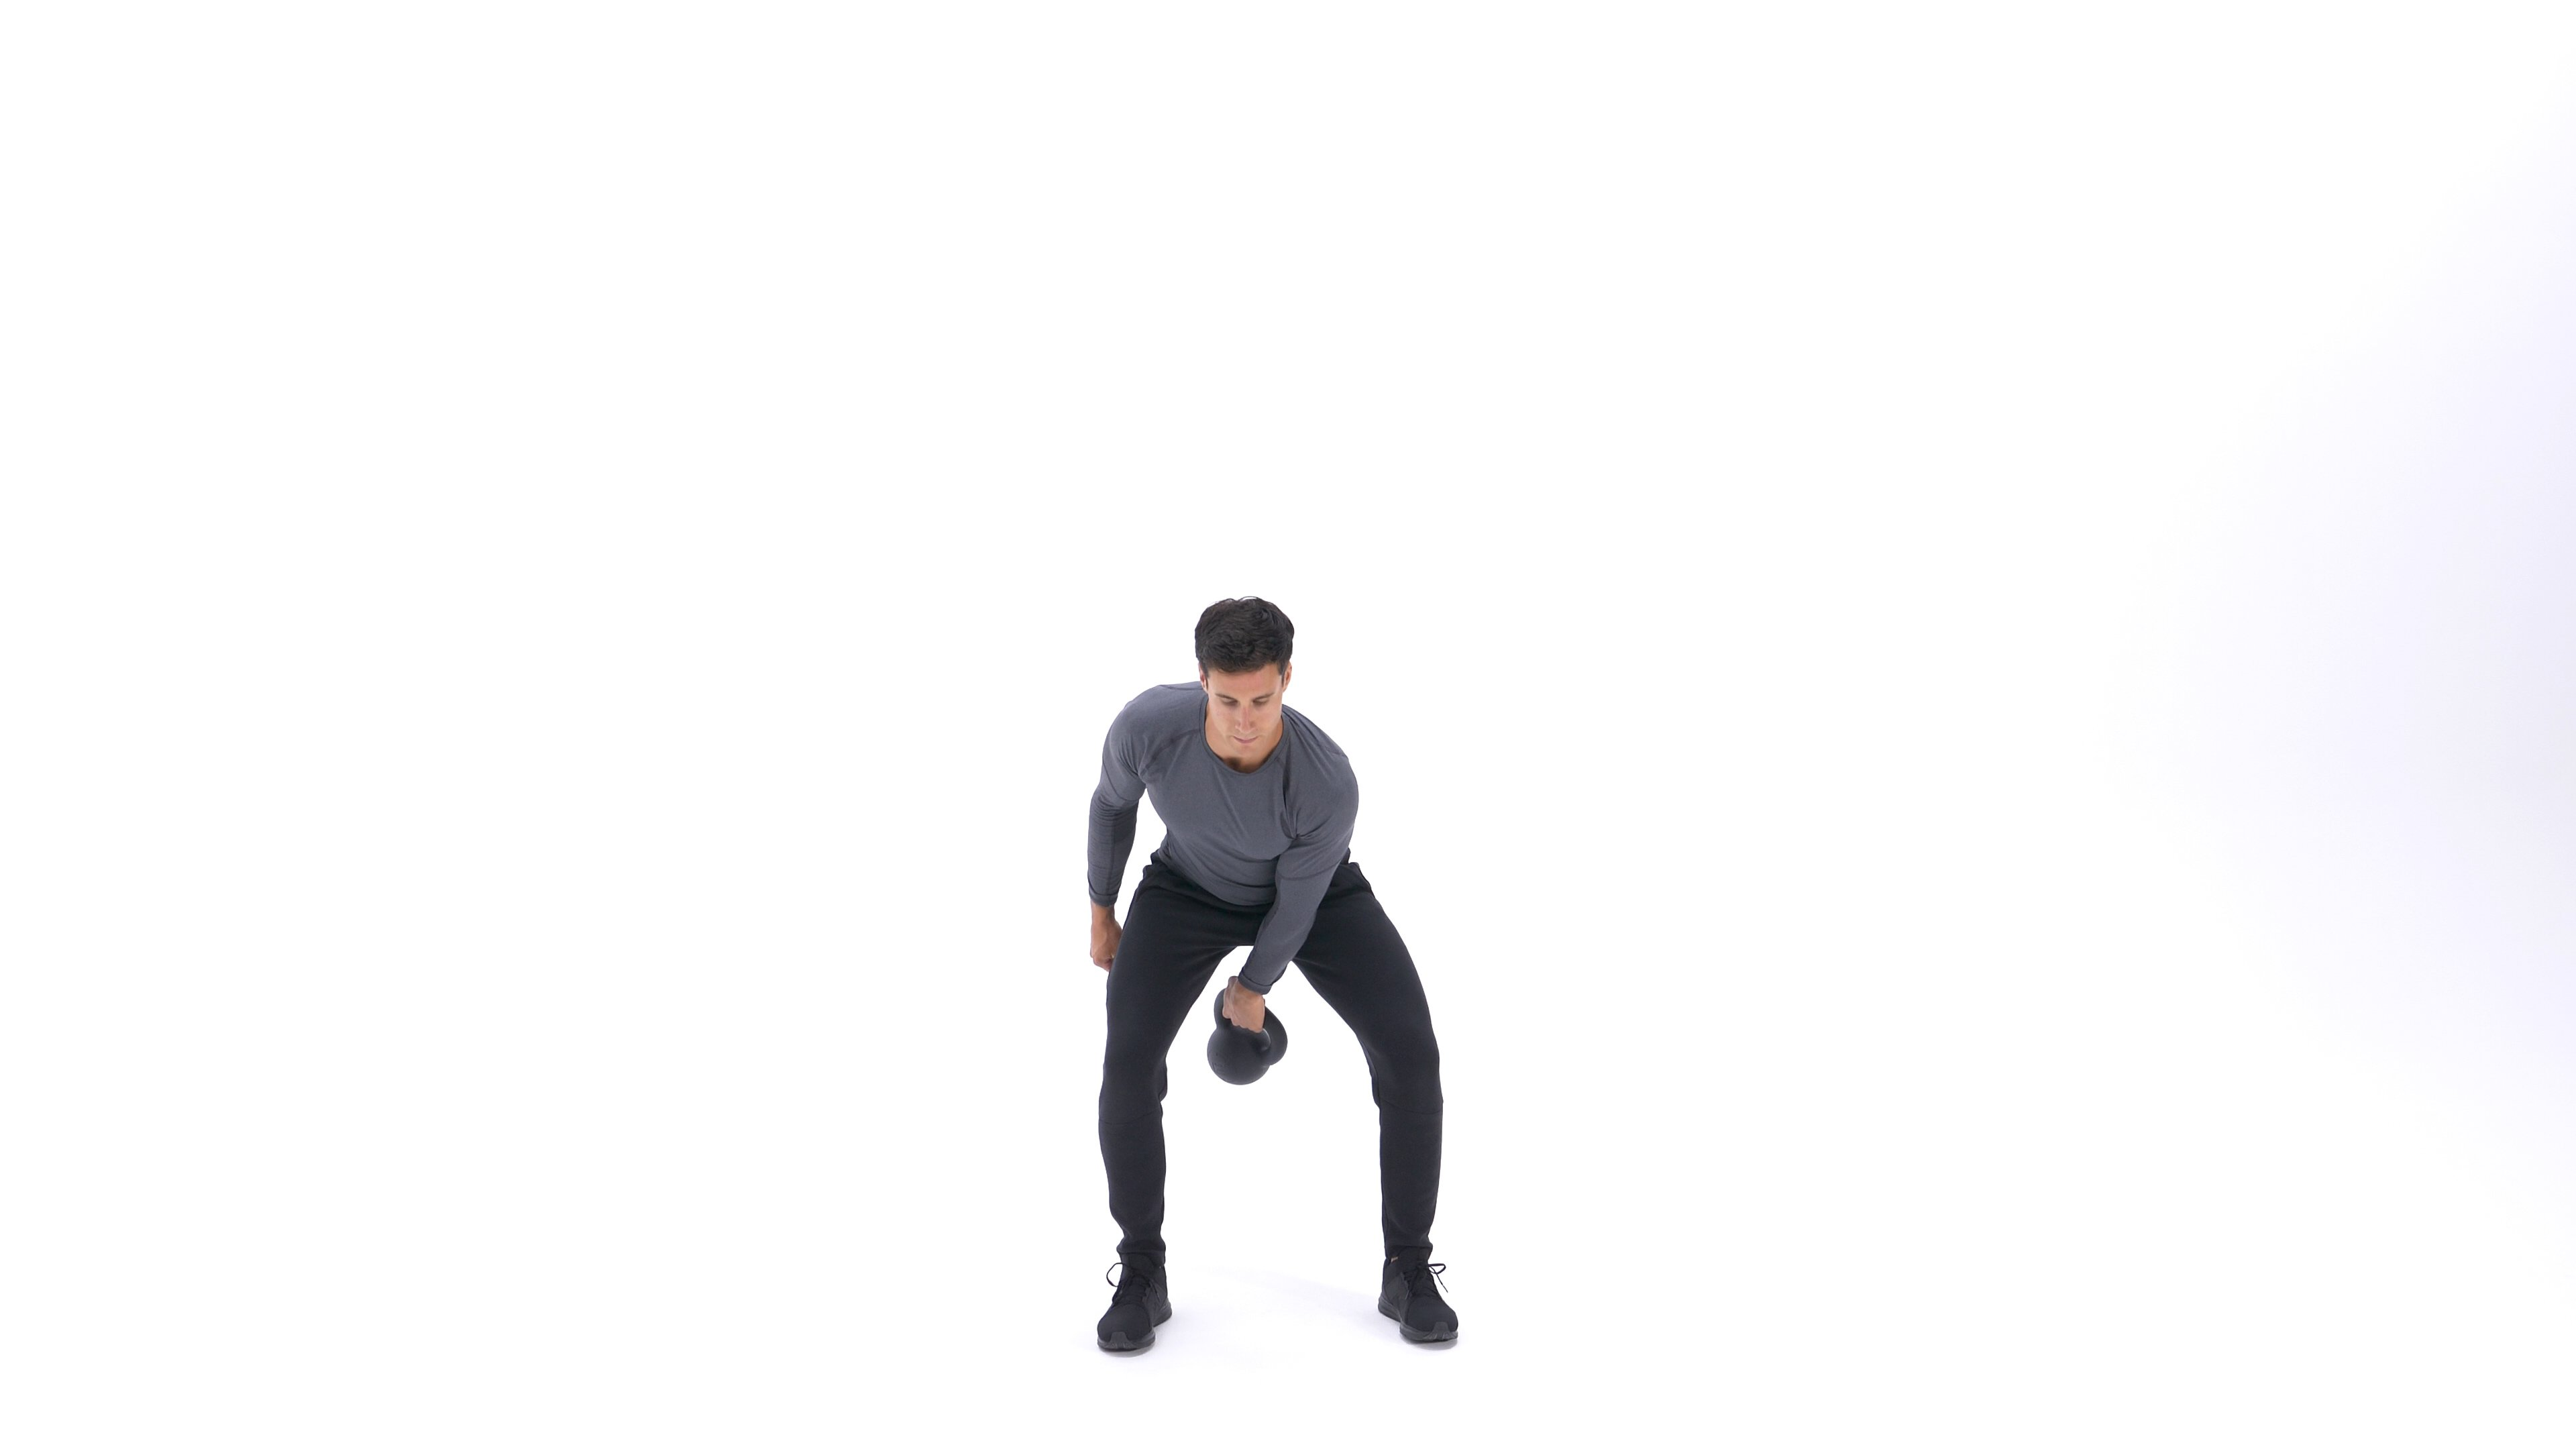 Single-arm kettlebell snatch image